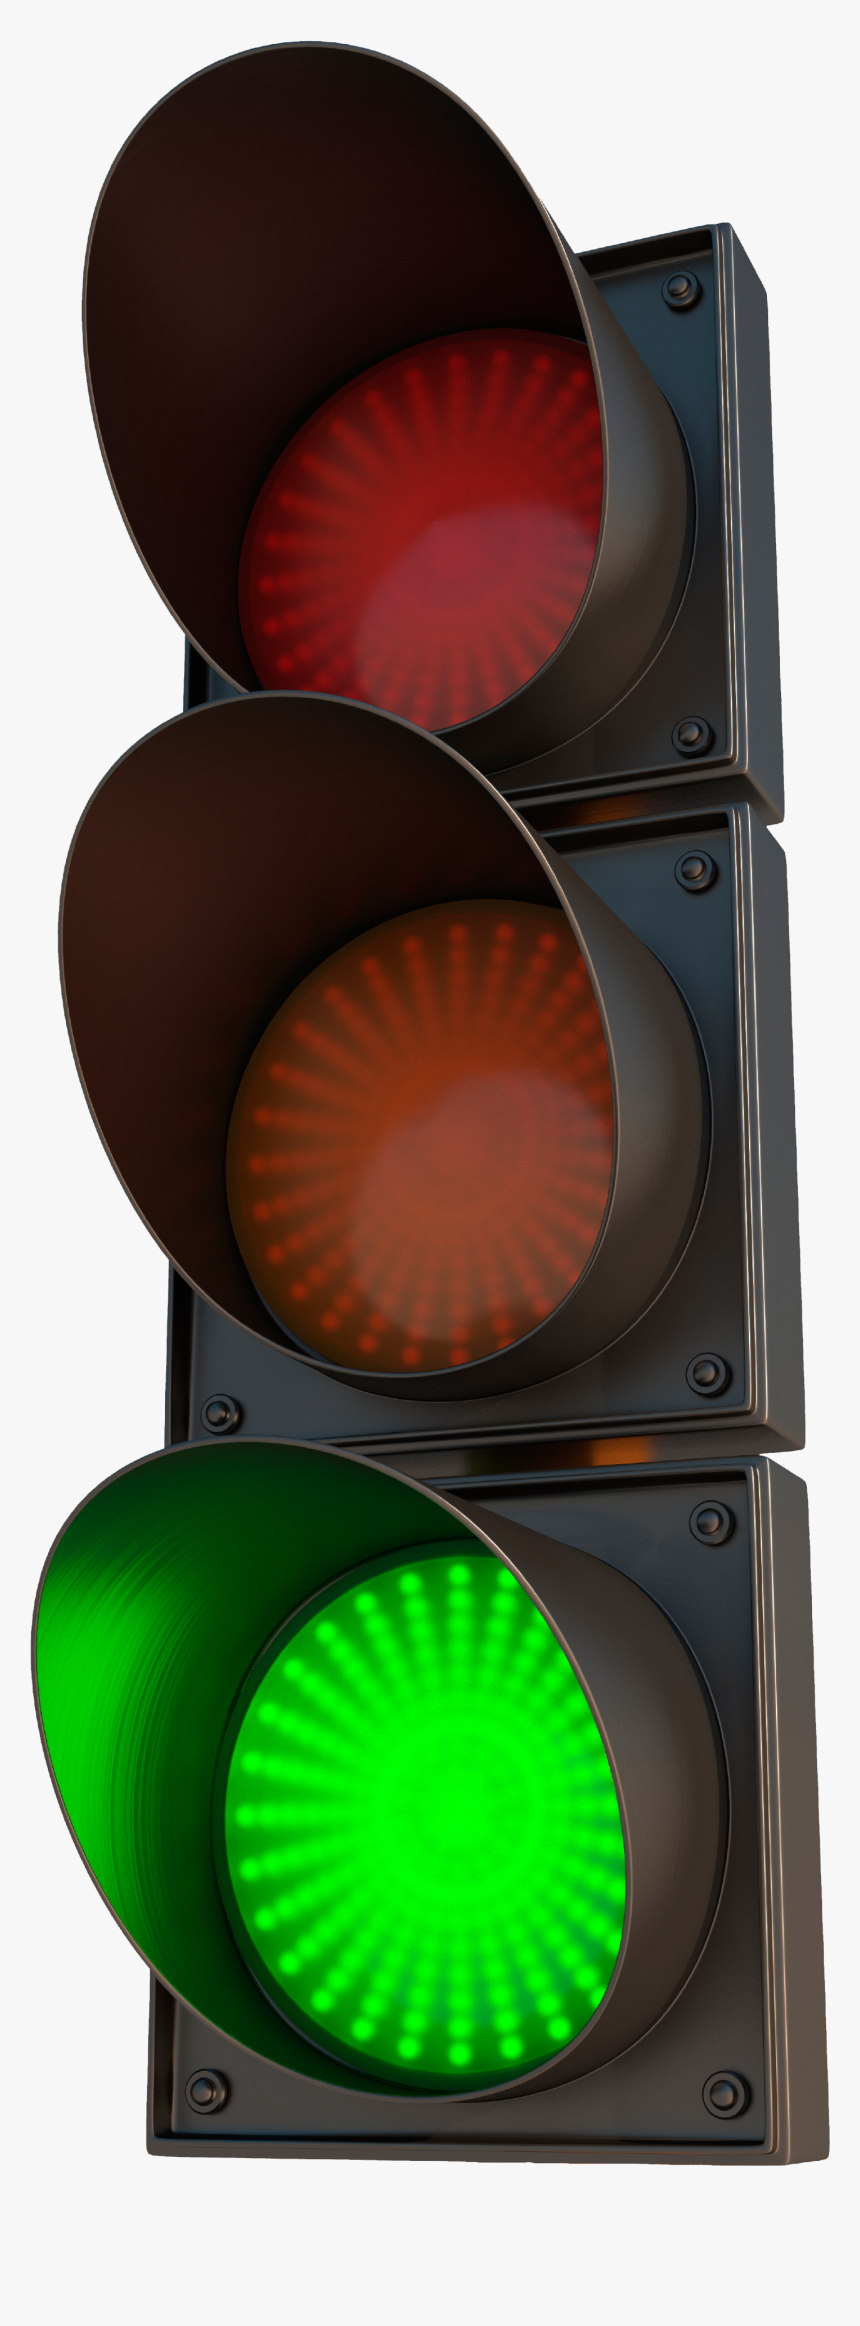 Green Traffic Light Transparent, HD Png Download, Free Download